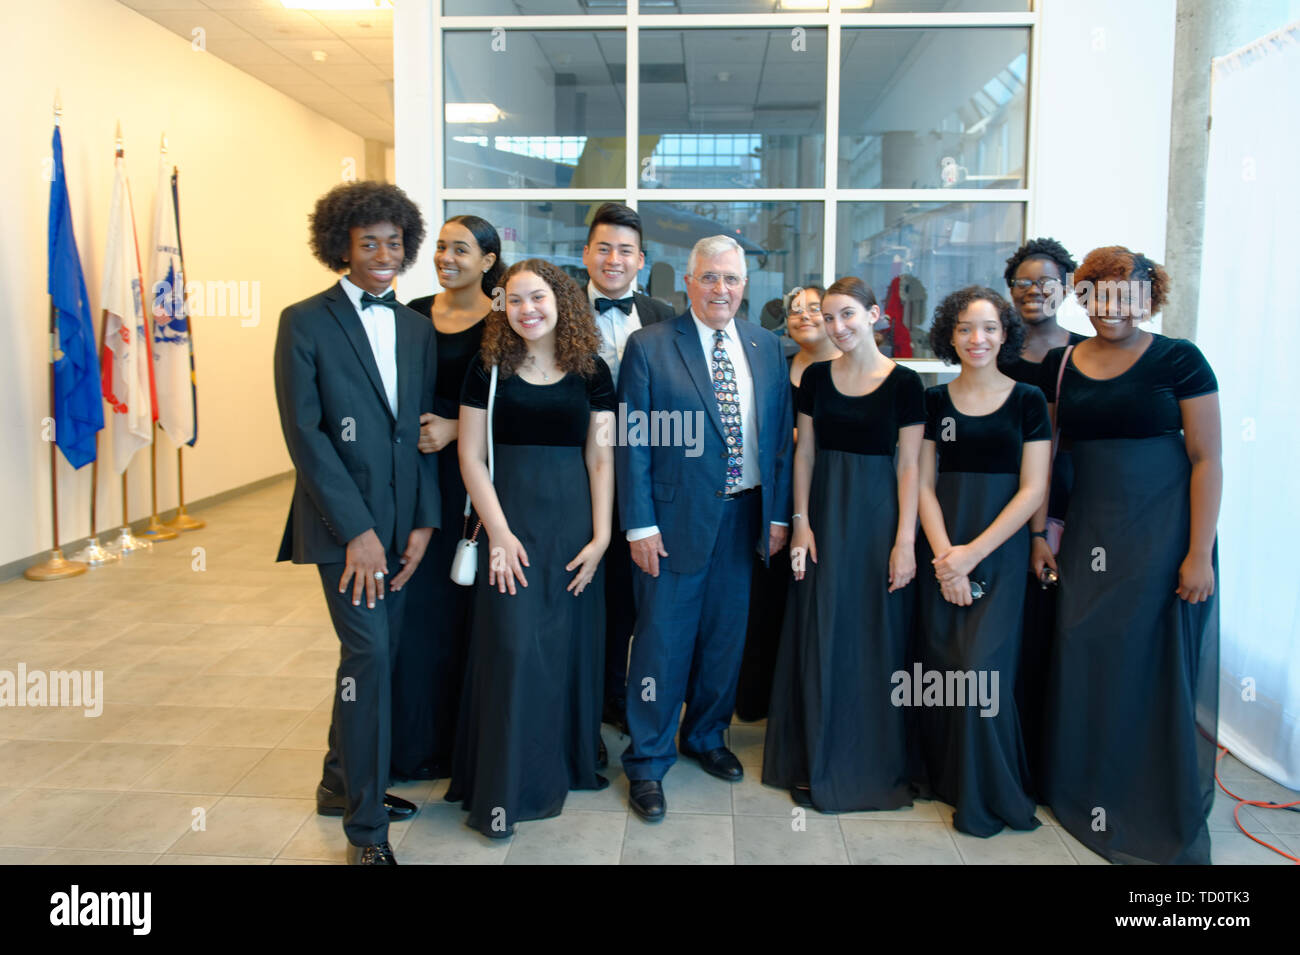 Garden City, New York, USA. 6th June, 2019. Apollo 17 astronaut HARRISON SCHMITT, at center, poses with Freeport High School Select Chorale members soon to perform at Apollo at 50 Anniversary Dinner at Cradle of Aviation Museum. Credit: Ann Parry/ZUMA Wire/Alamy Live News - Stock Image